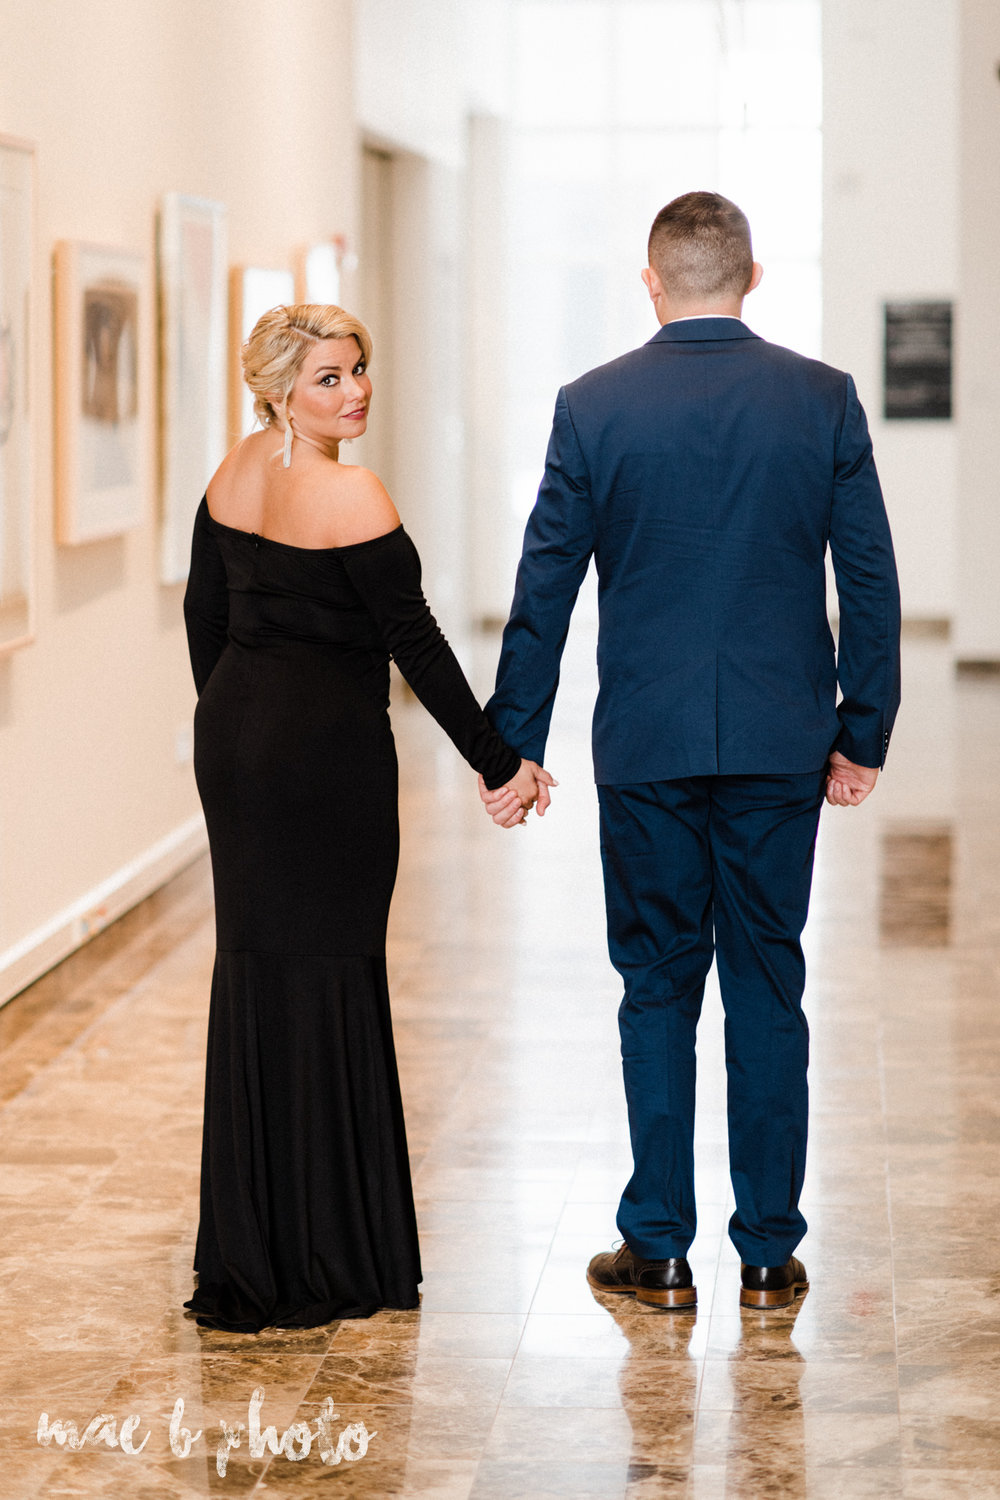 paige and cale's personalized winter glam engagement session at the butler institute of american art and downtown youngstown in youngstown ohio photographed by youngstown wedding photographer mae b photo-16.jpg